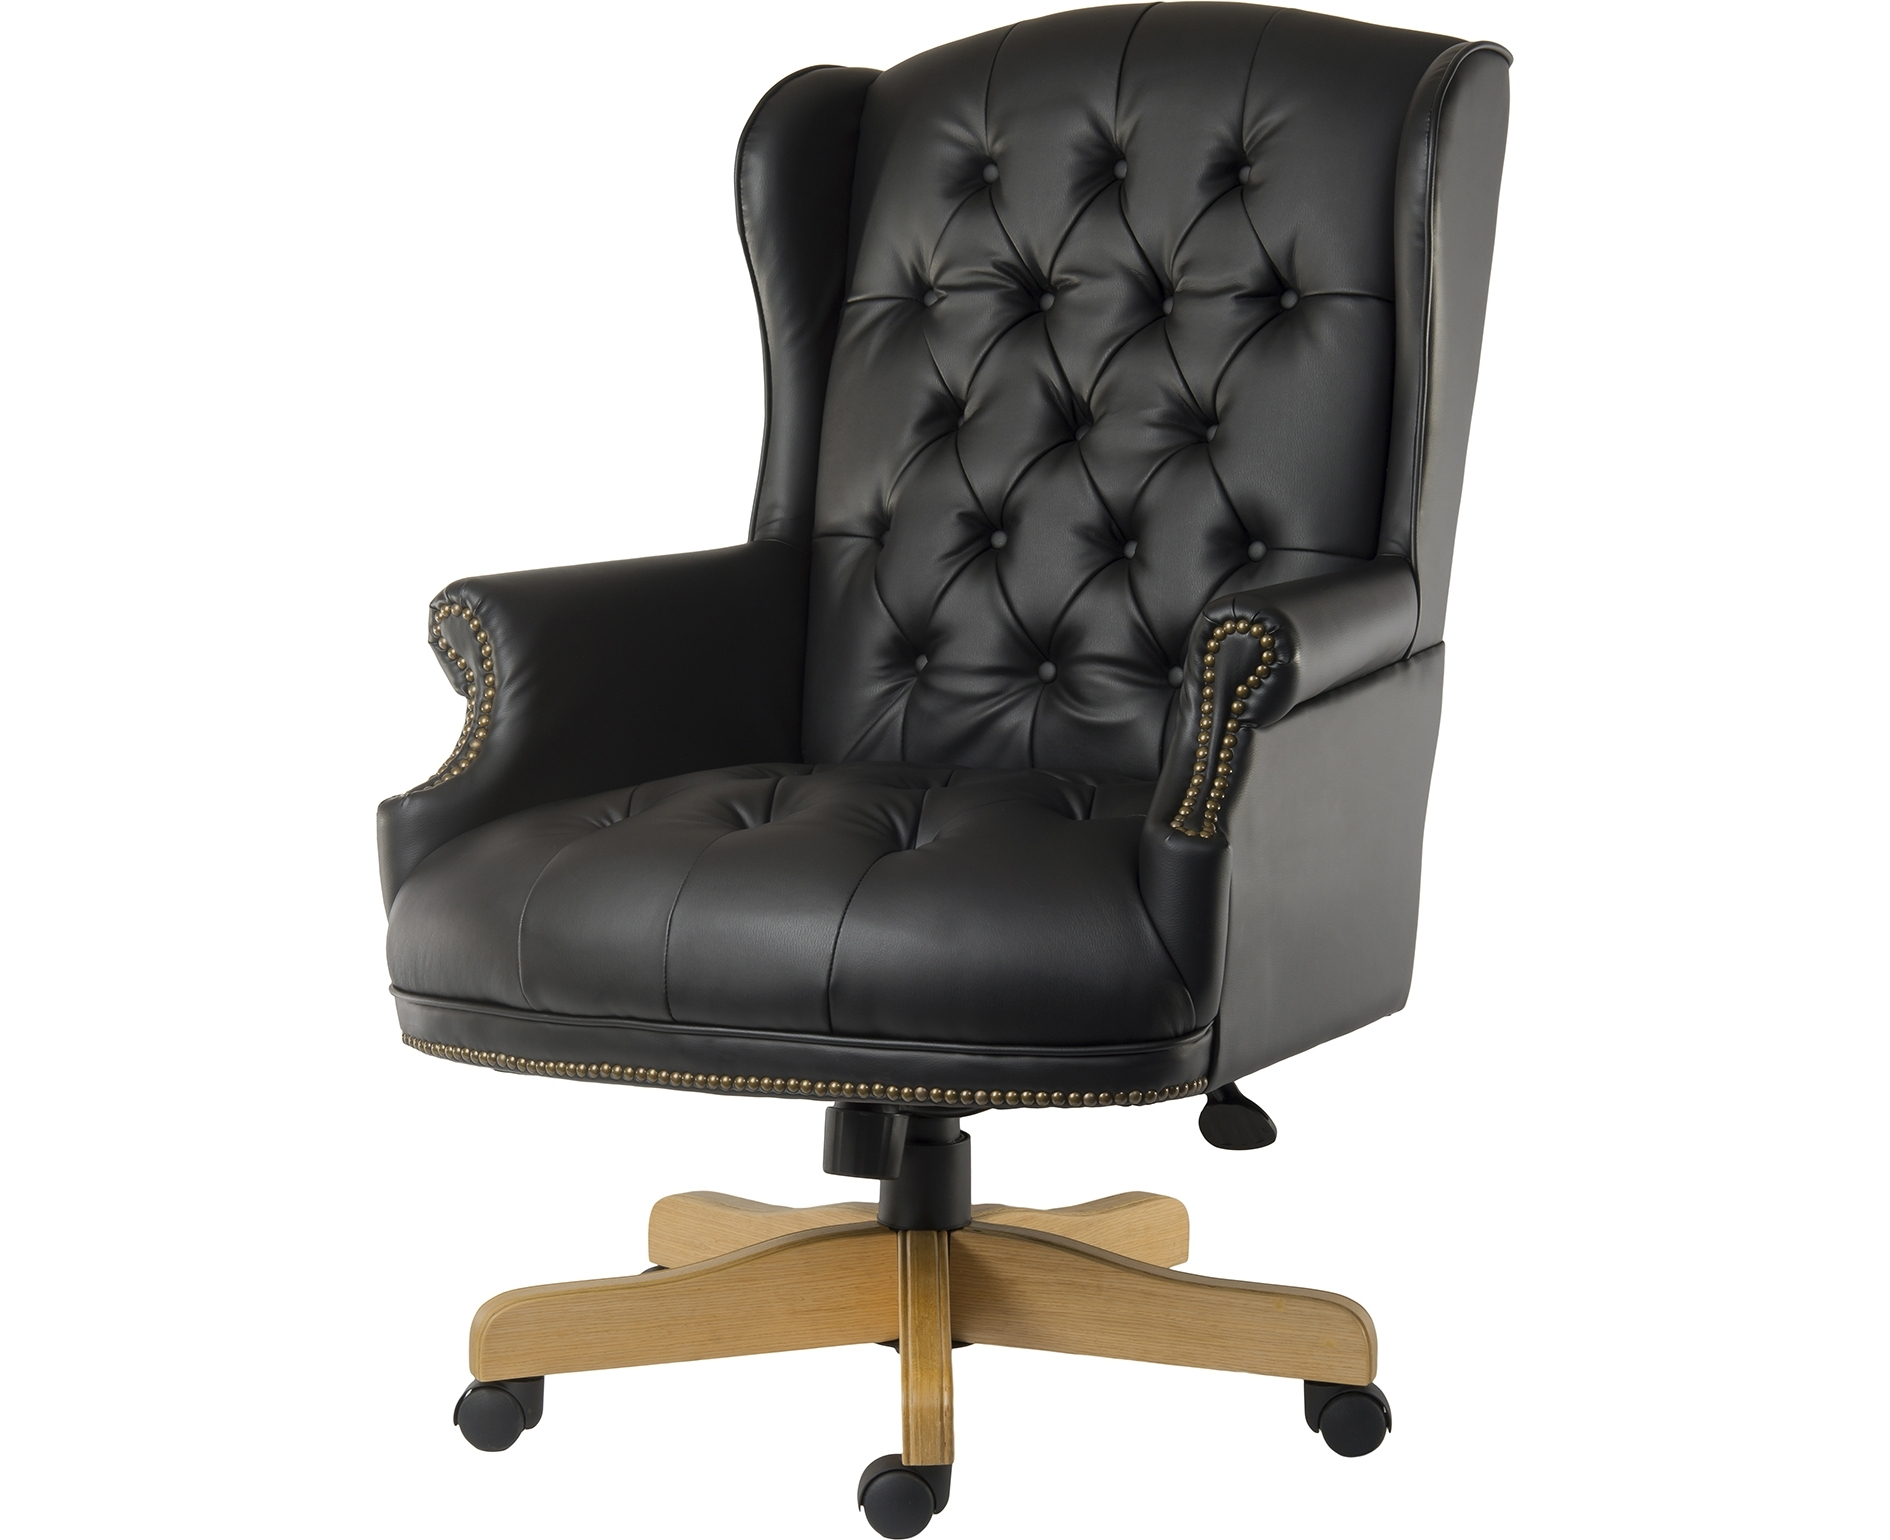 Well Known Black Leather Faced Executive Office Chairs Inside Leather Black Office Chairs & Seating Furniture & Storage – Ryman (View 19 of 20)